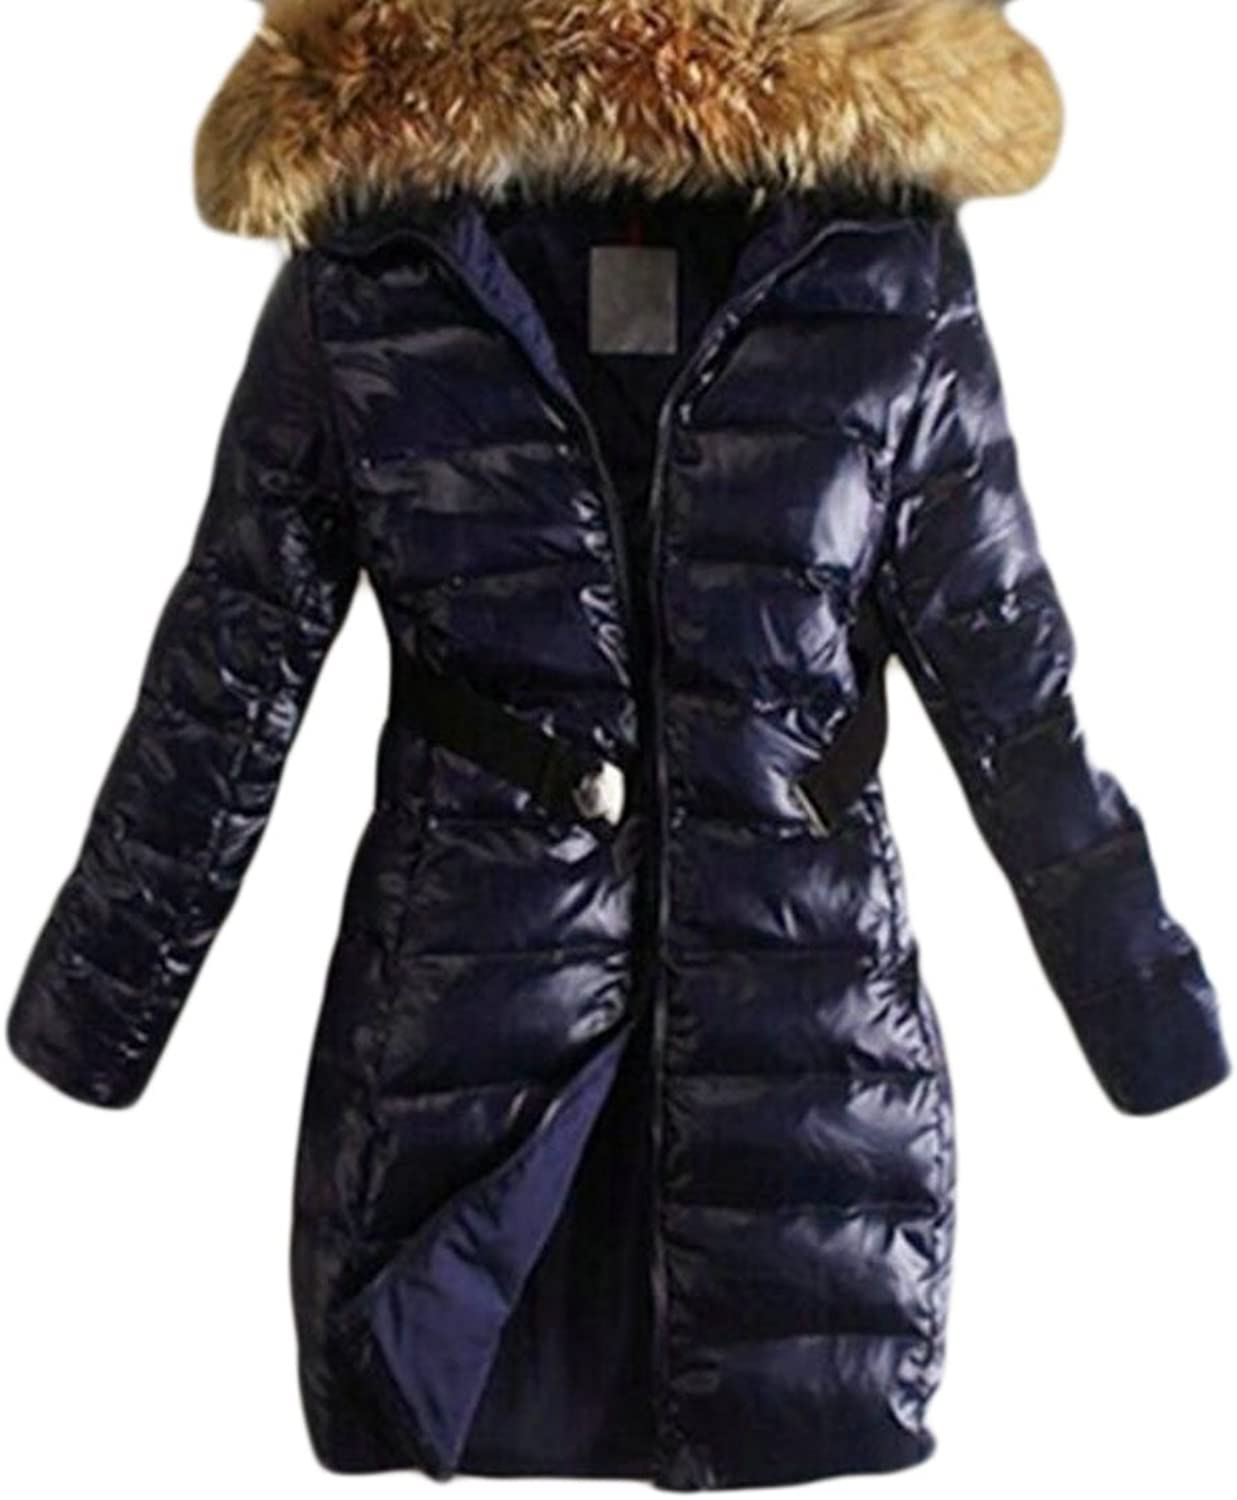 Cromoncent Womens Warm Puffer Quilted Faux Fur Hooded Outwear Parka Coat